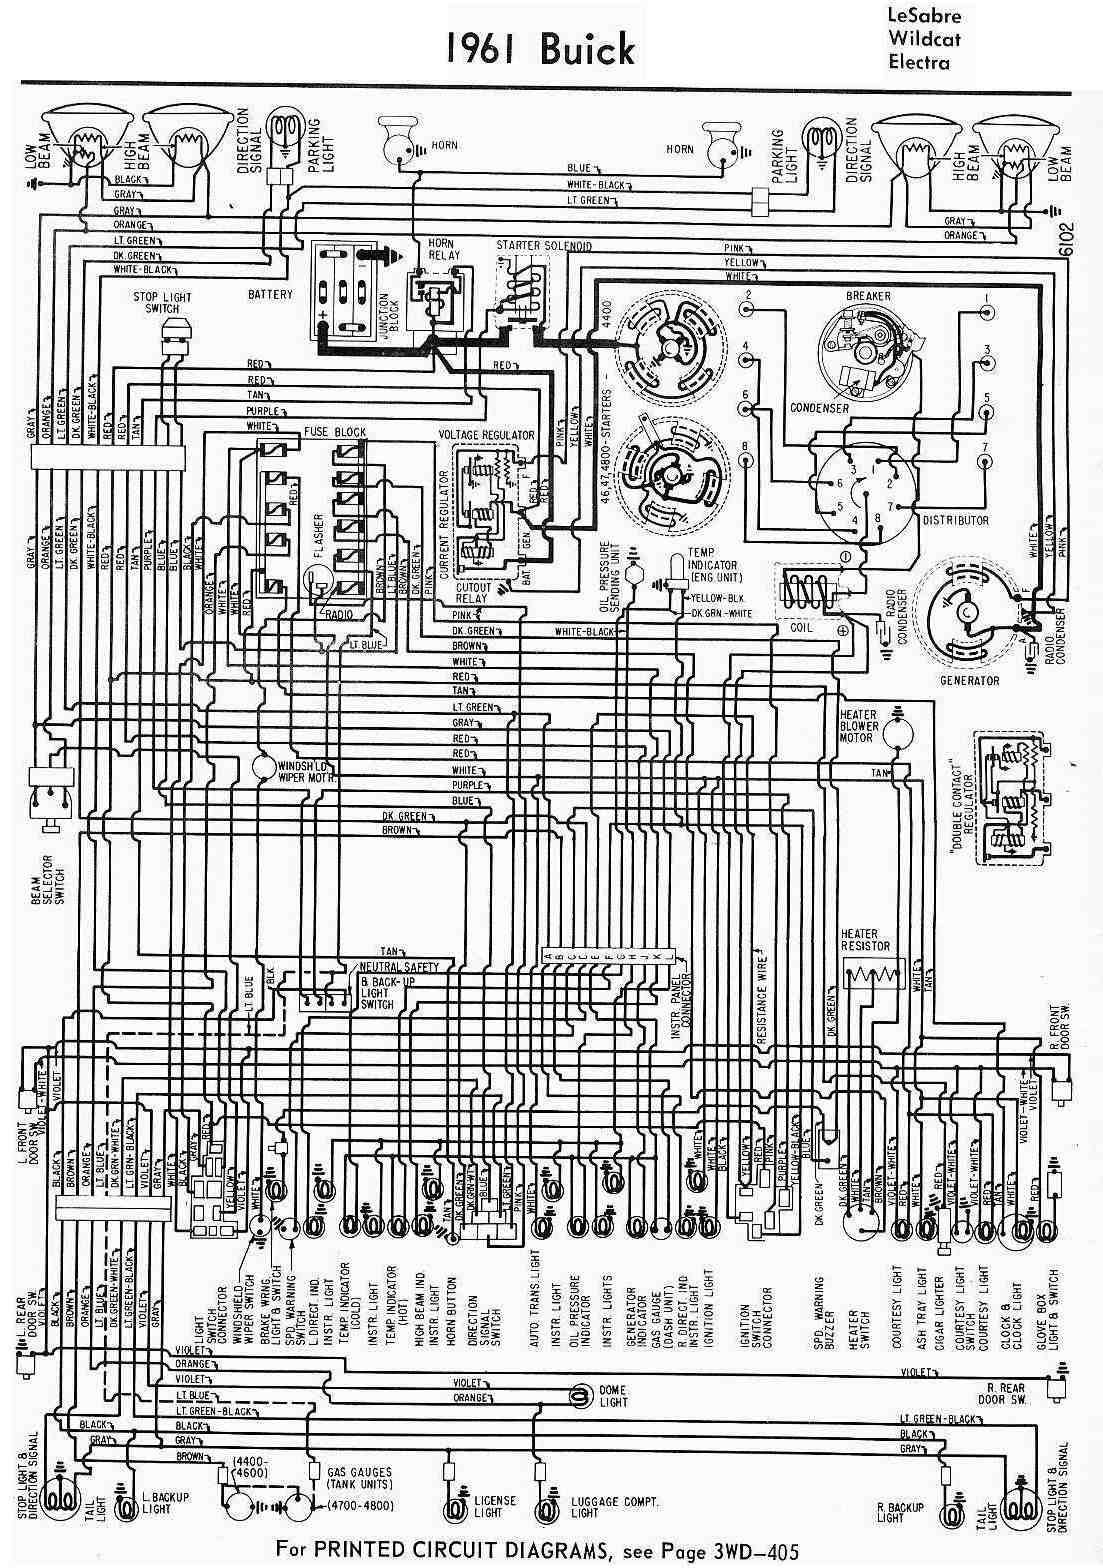 1948 Chrysler Wiring Diagram Wiring Diagram Data Today